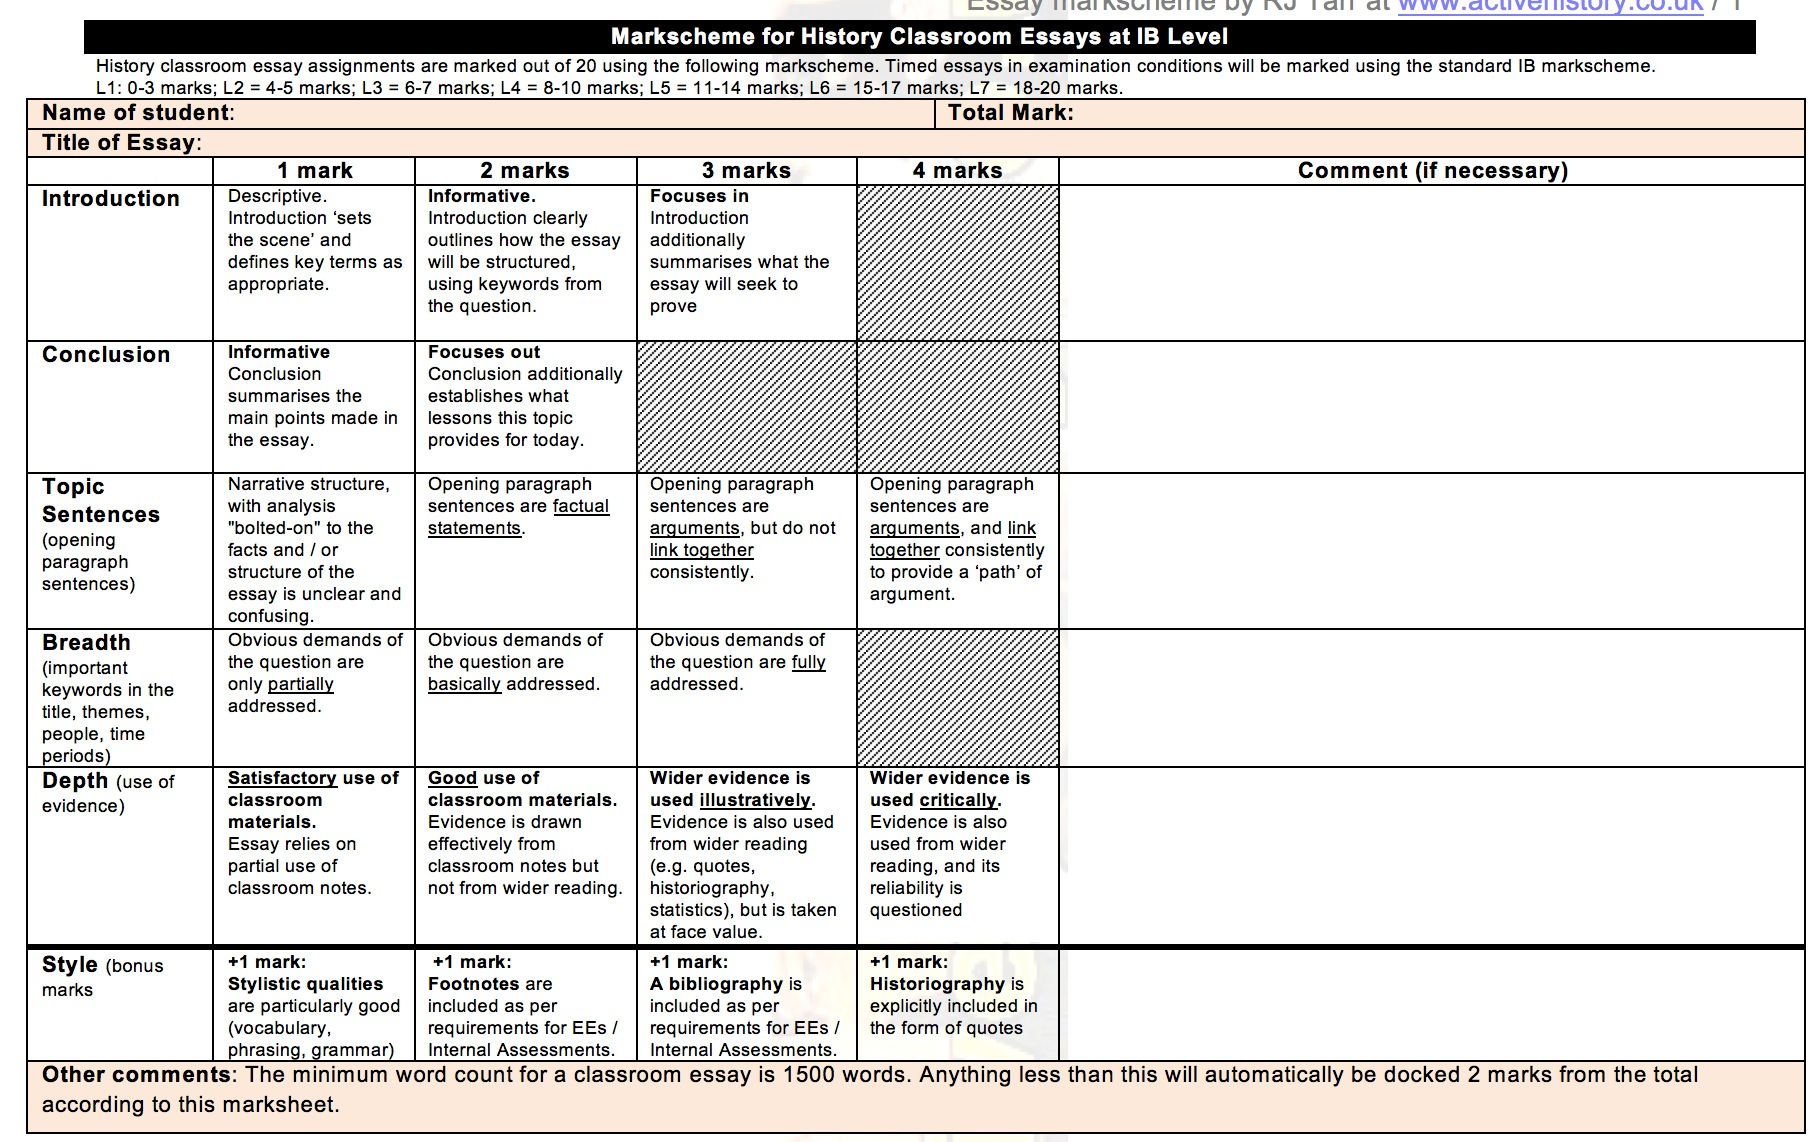 rubric for essay marking Grading rubrics: examples of rubric creation creating a rubric takes time and requires thought and experimentation here you can see the steps used to create two kinds of rubric: one for problems in a physics exam for a small, upper-division physics course, and another for an essay assignment in a large, lower-division sociology course.